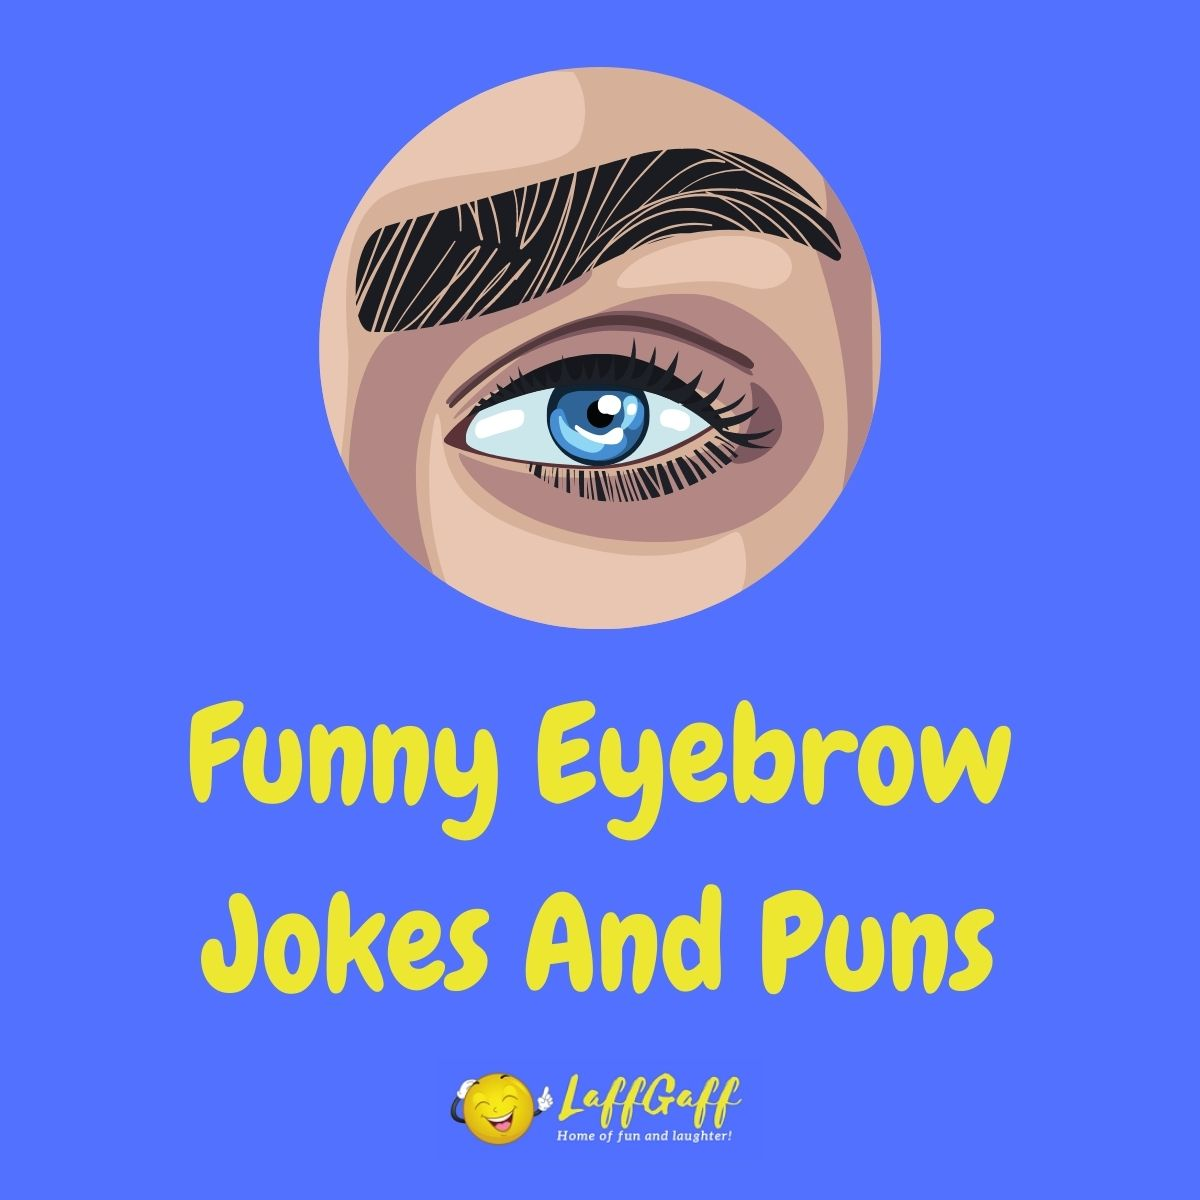 Featured image for a page of funny eyebrow jokes and puns.